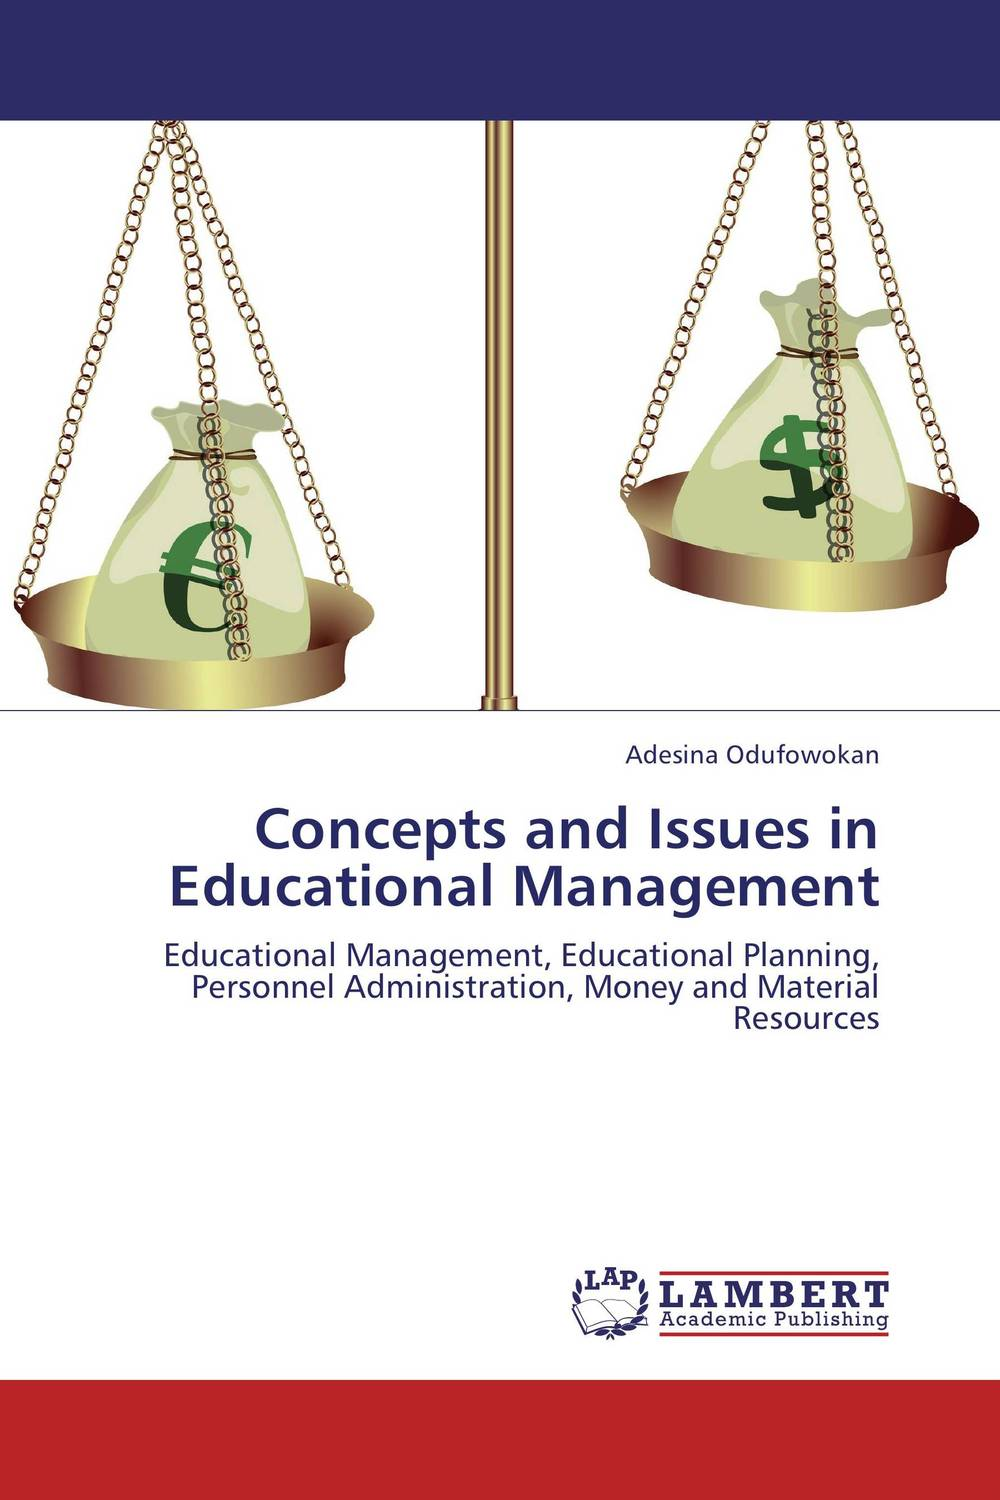 Concepts and Issues in Educational Management neera sharma education and educational management in kautilya s arthshastra